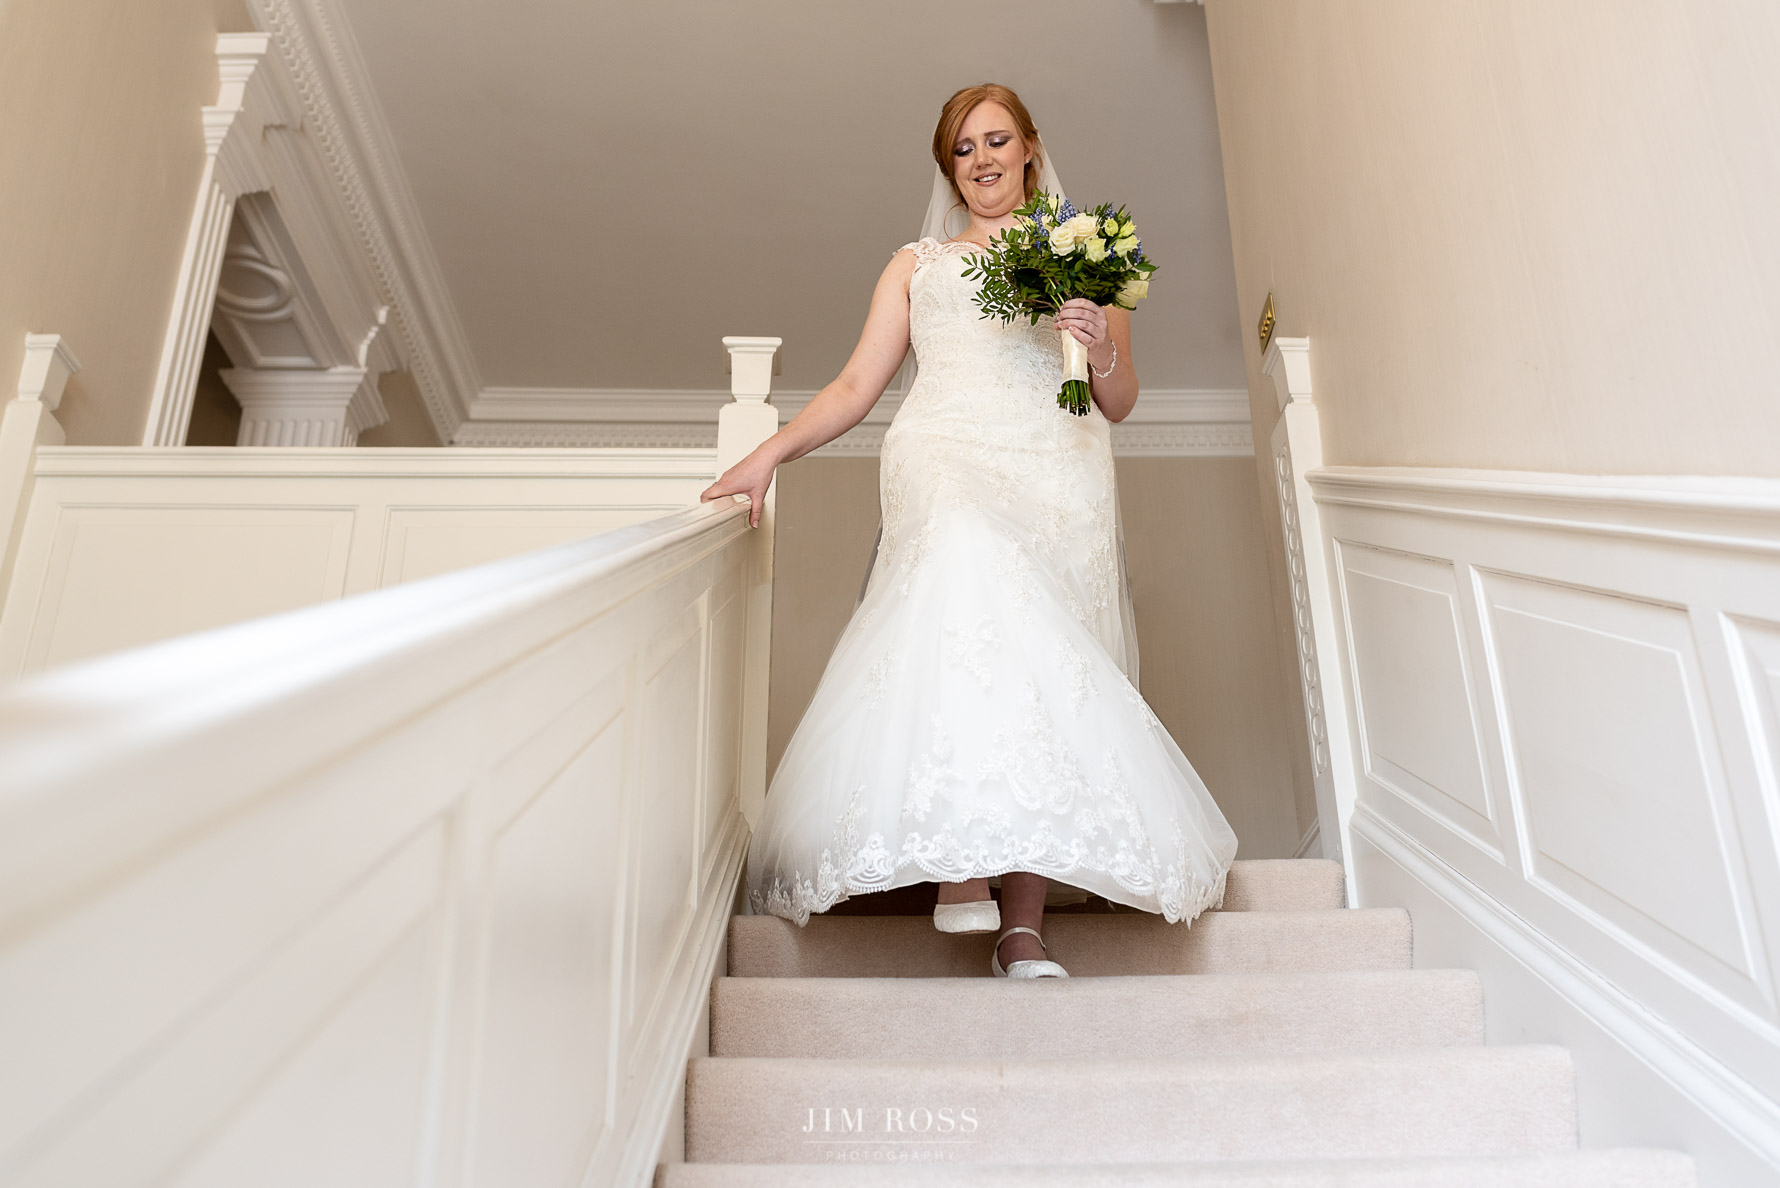 Bride walks down stairs to ceremony